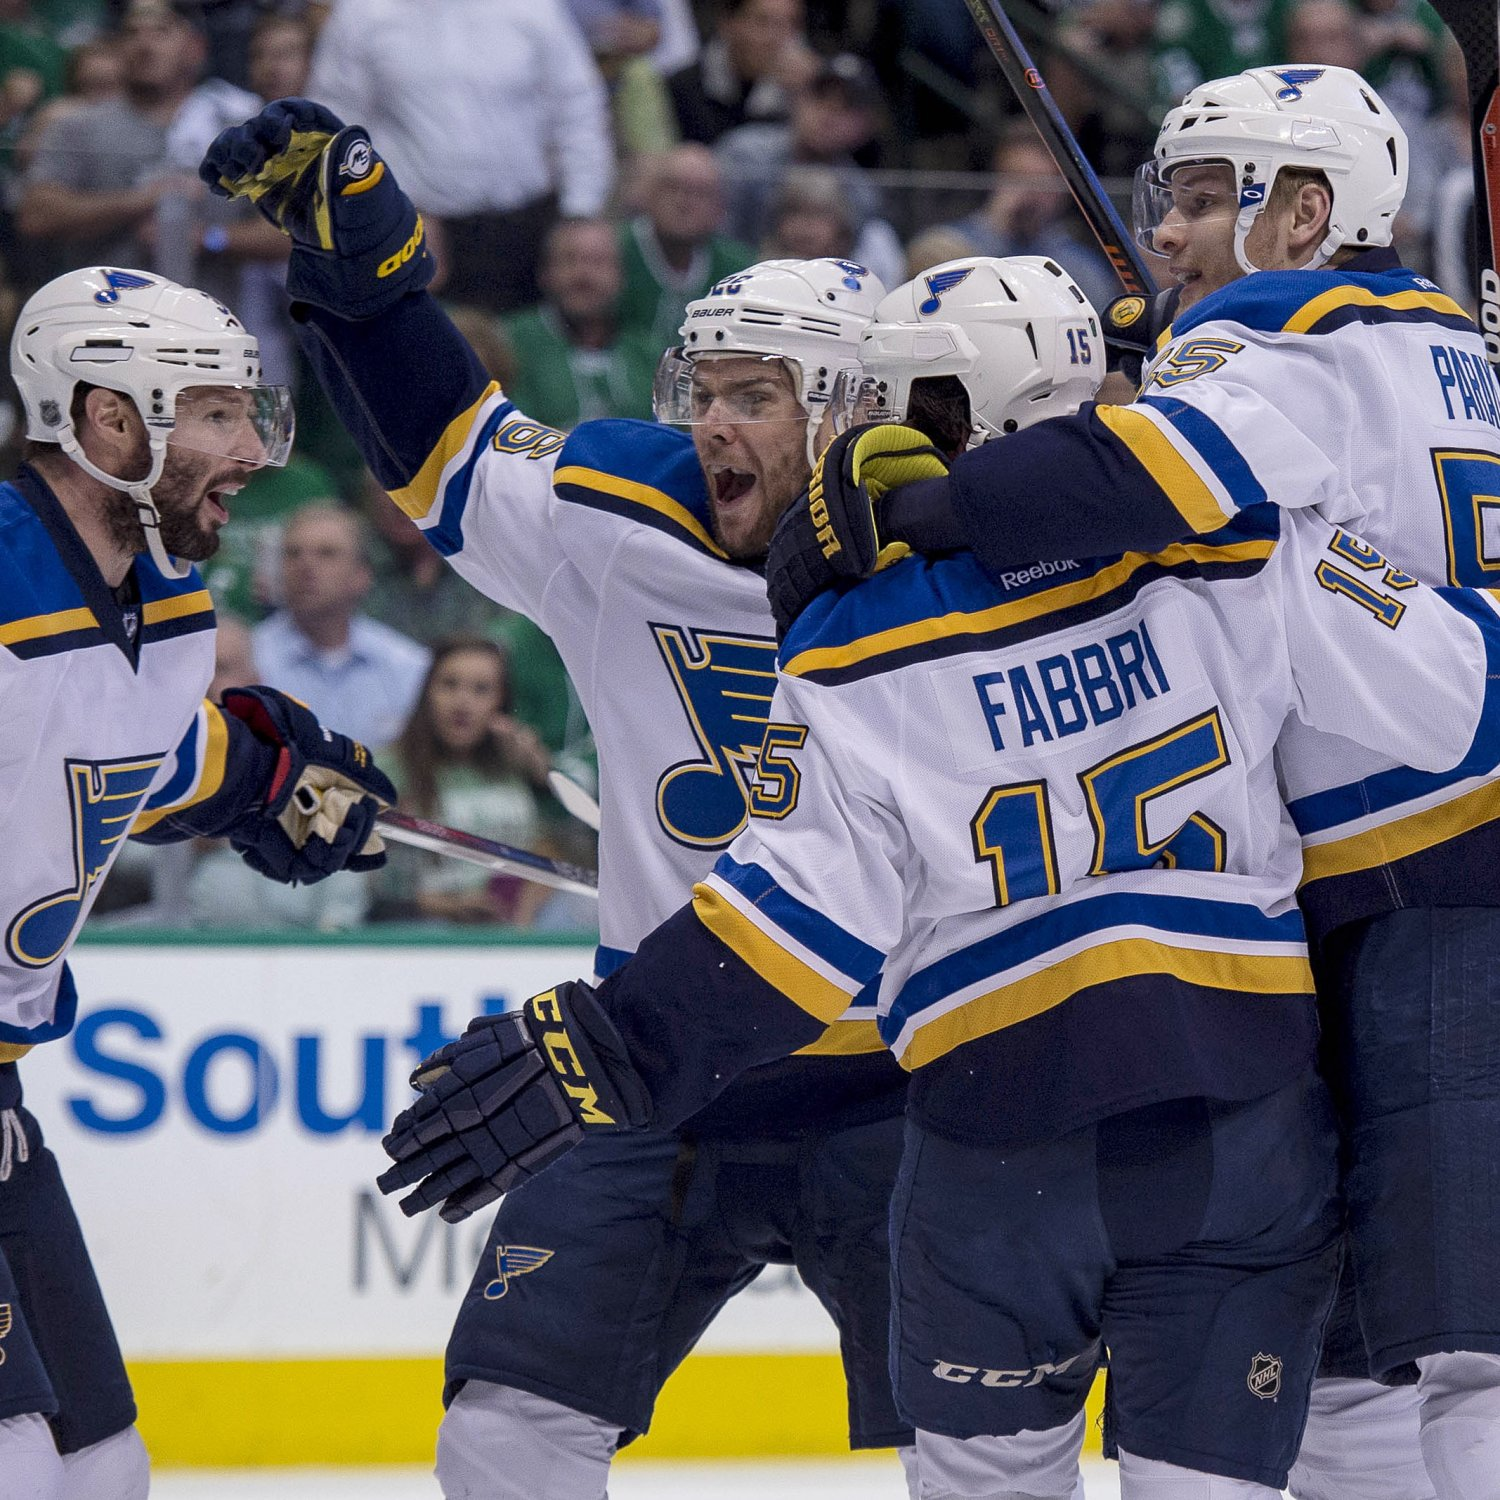 NHL Playoff Schedule 2016: Game Listings and Predictions for Conference Finals | Bleacher Report